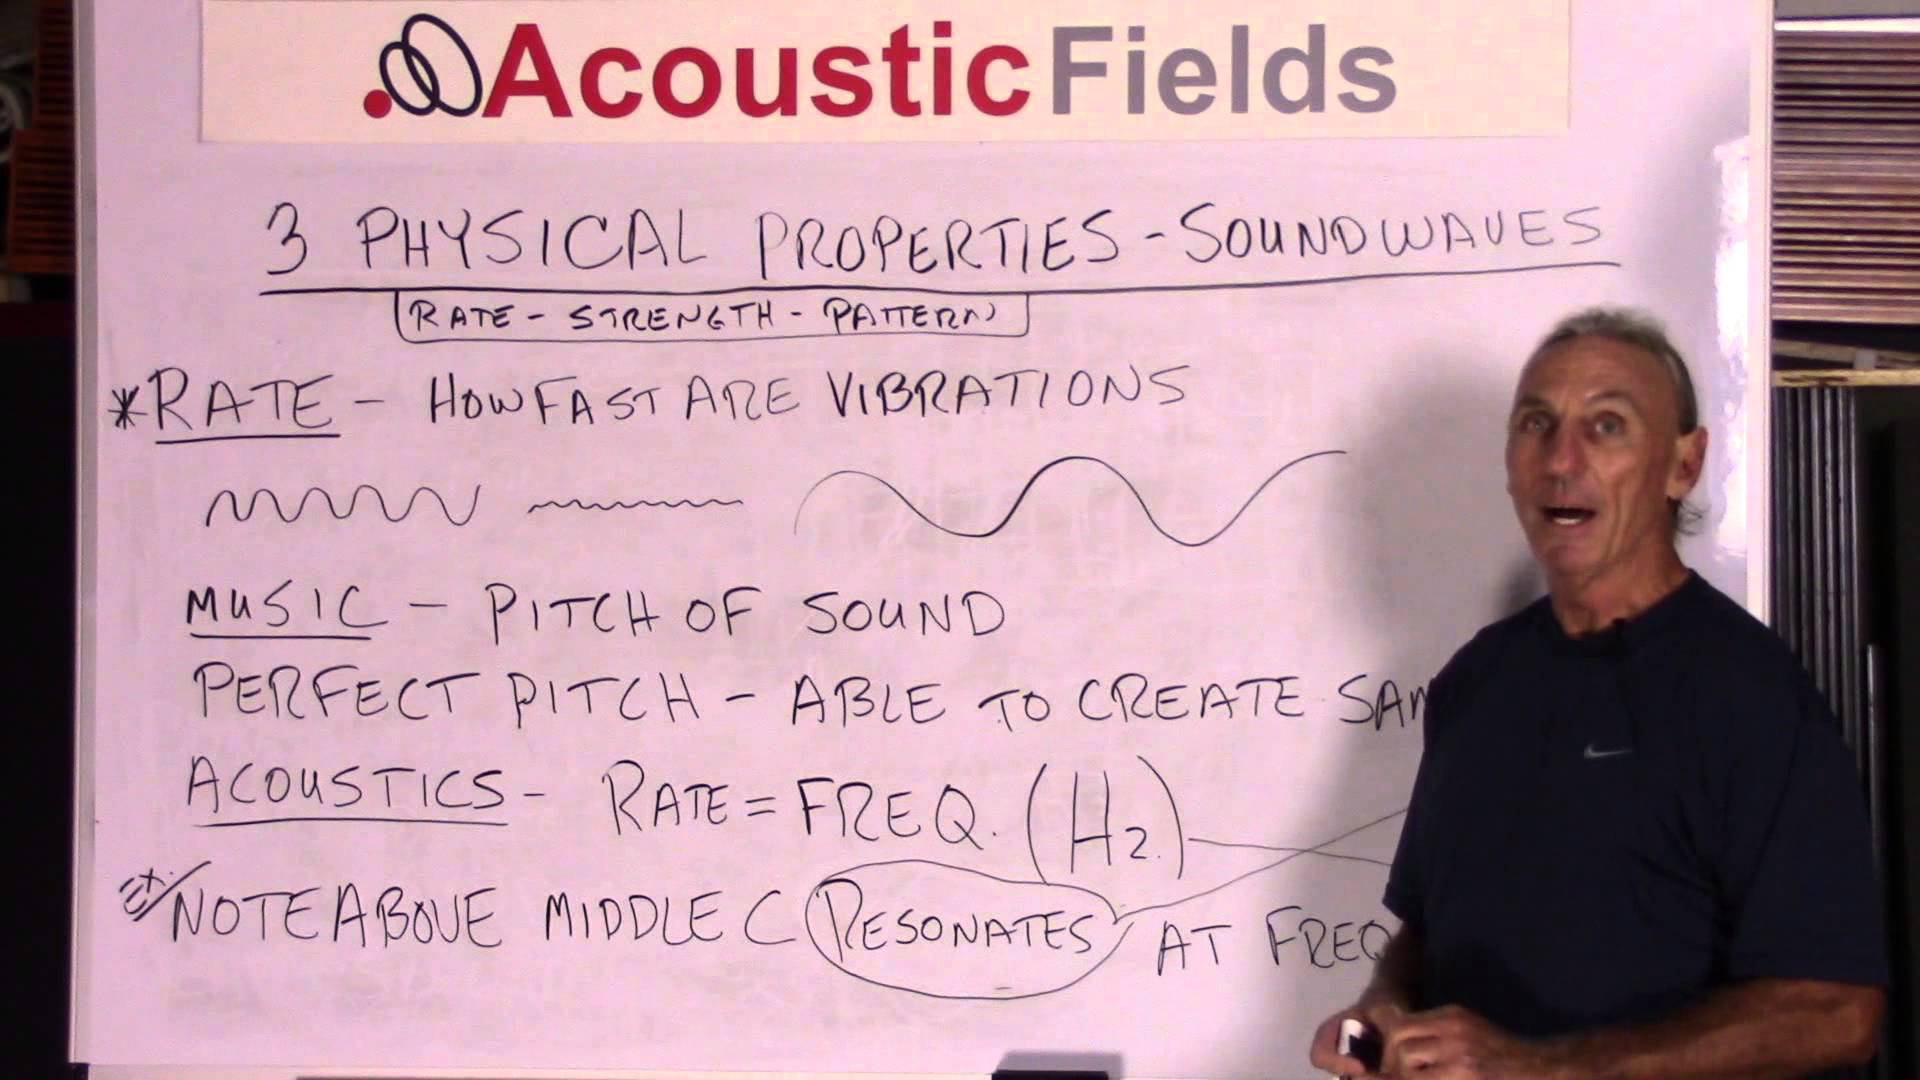 Room Acoustics 101 – The Physical Properties Of Sound Waves